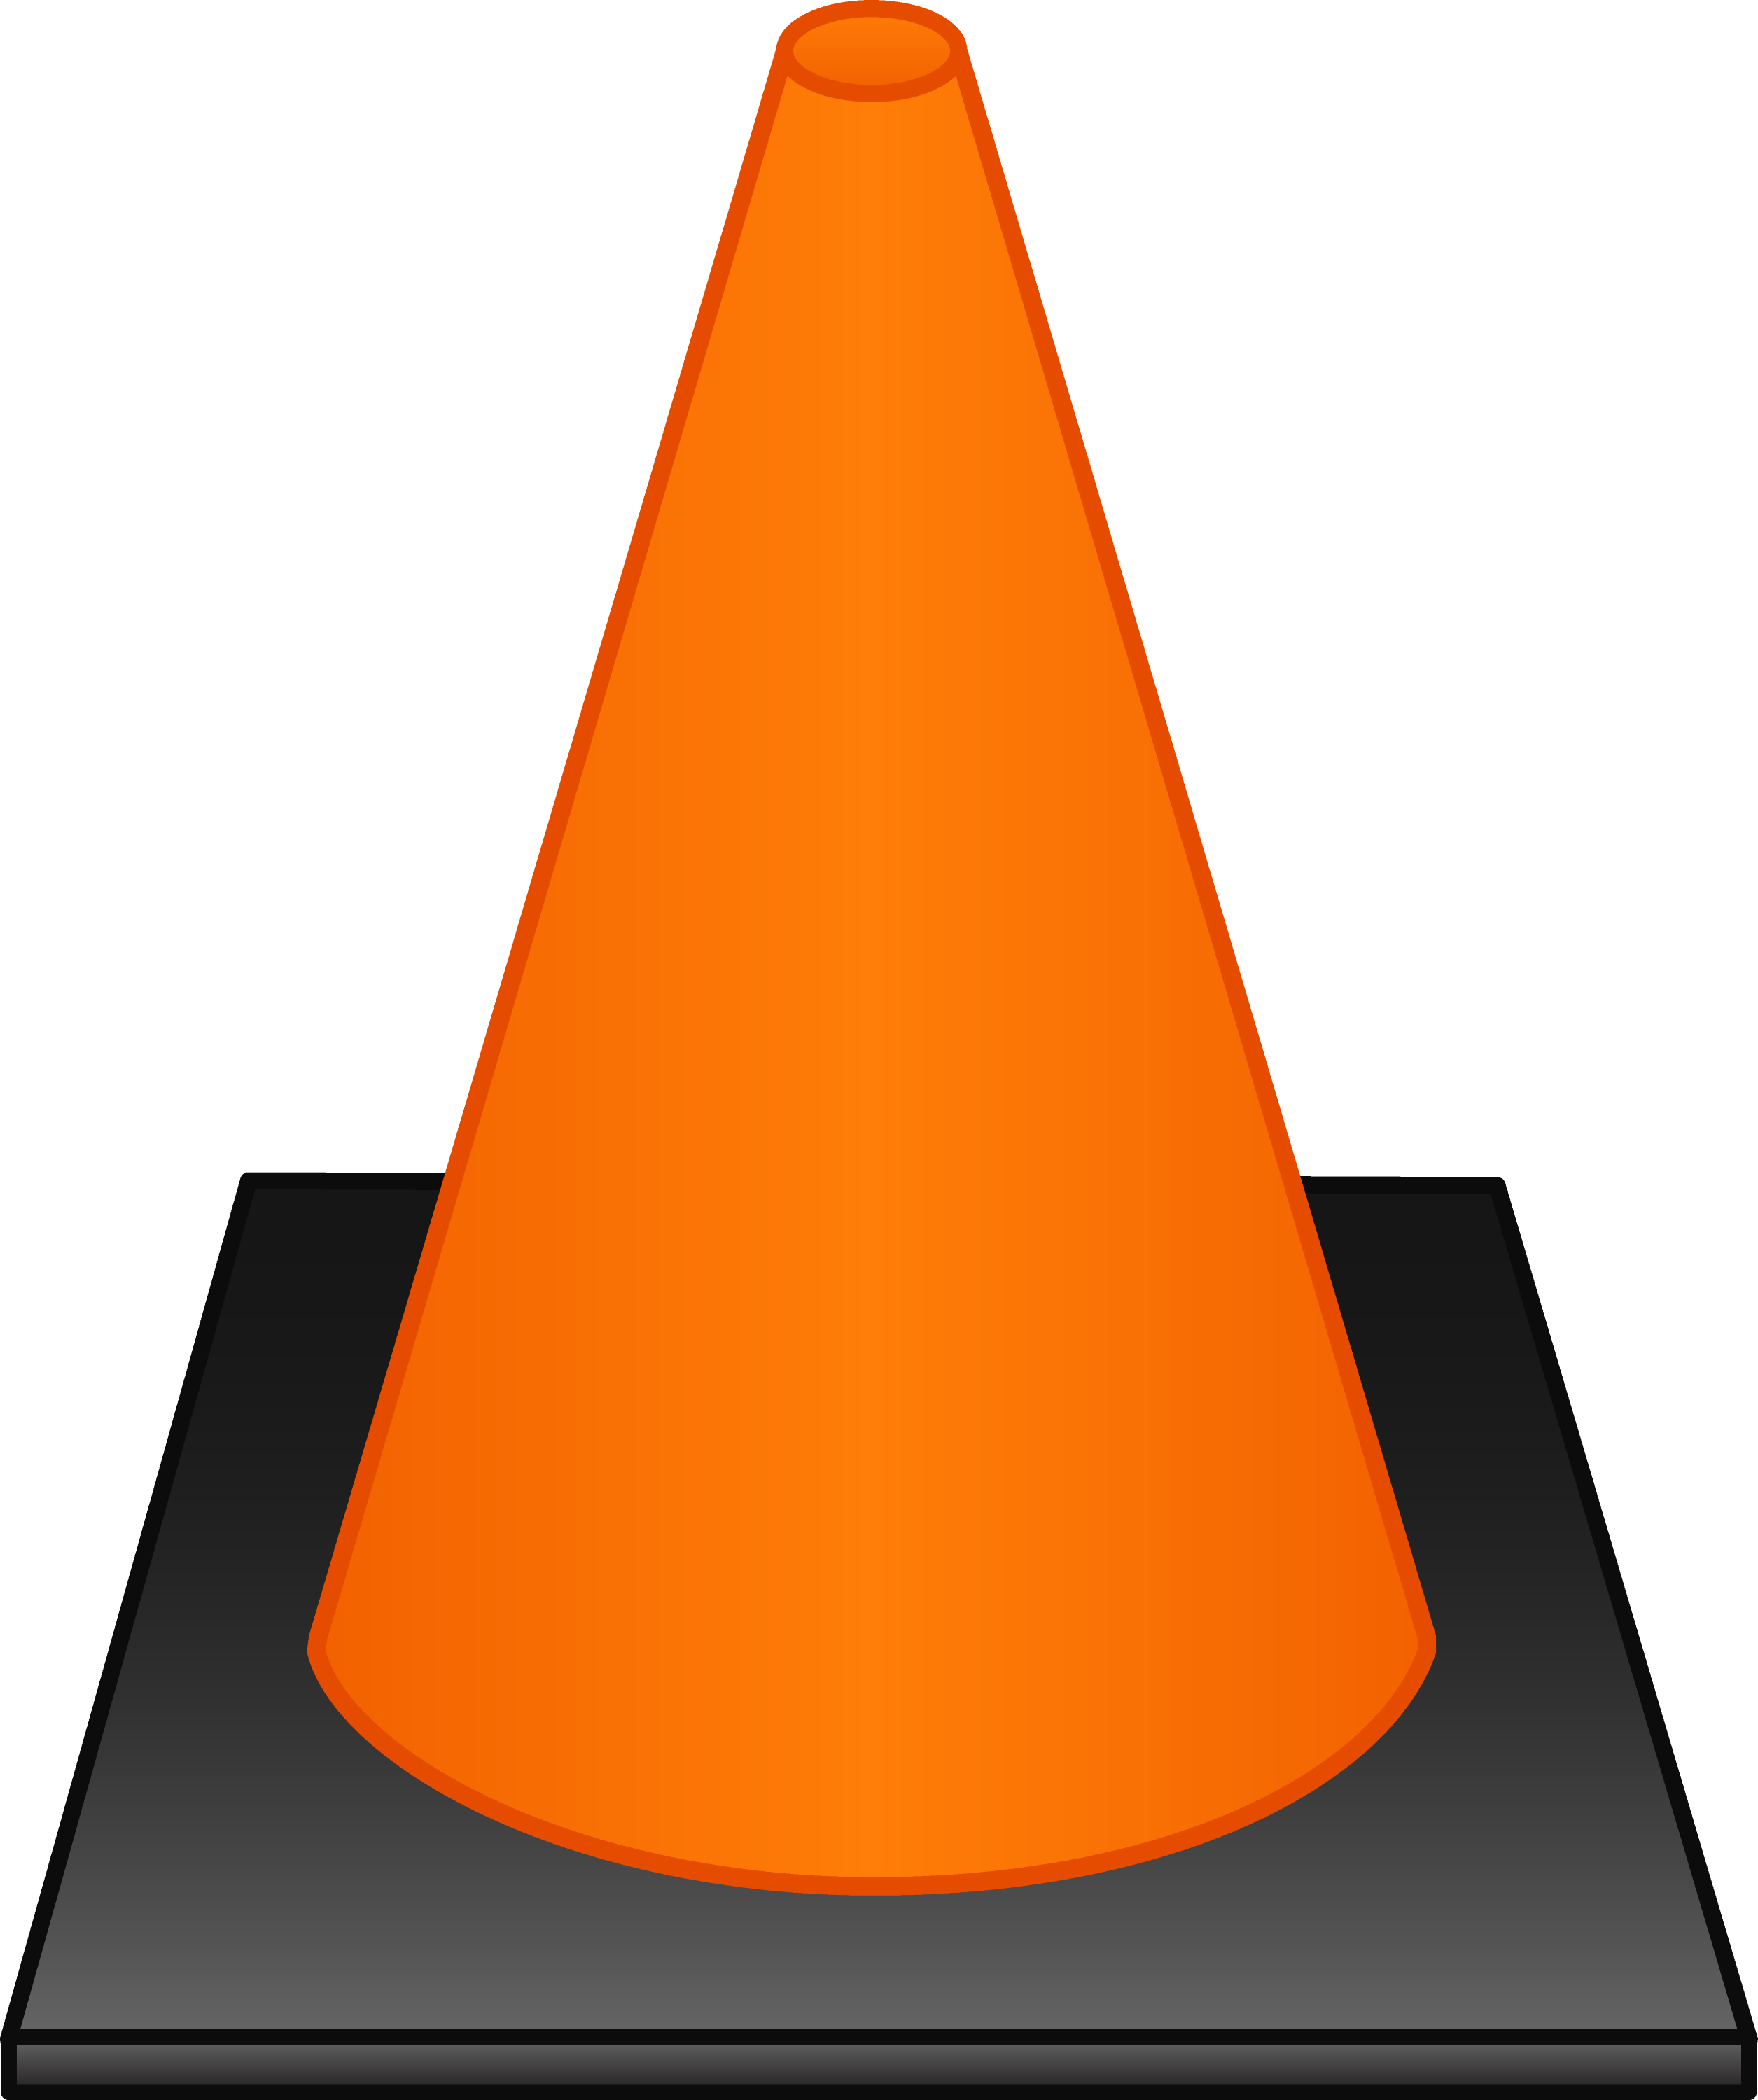 orange traffic cone free clip art rh sweetclipart com free construction clipart images construction clipart free images